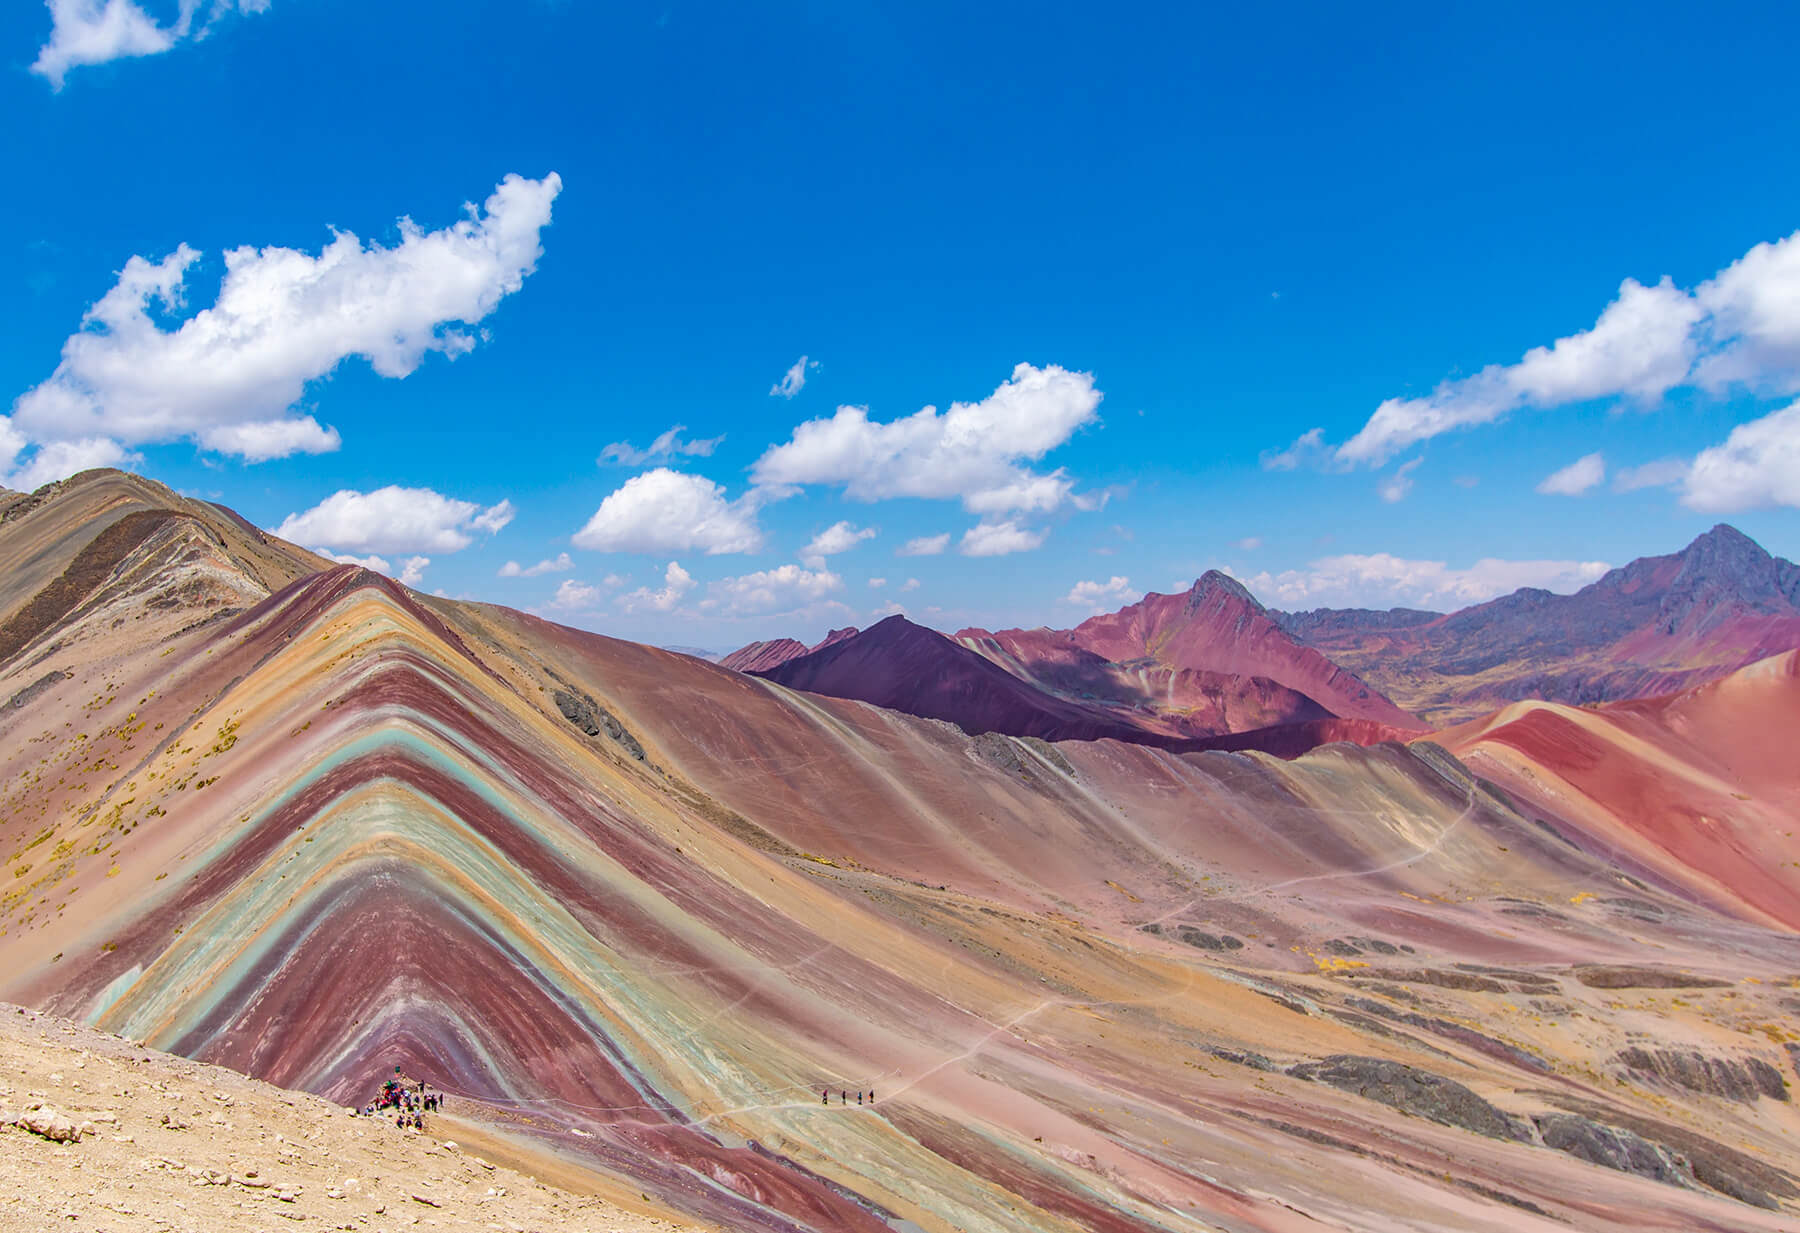 Rainbow Mountain in Peru should be on your bucket list